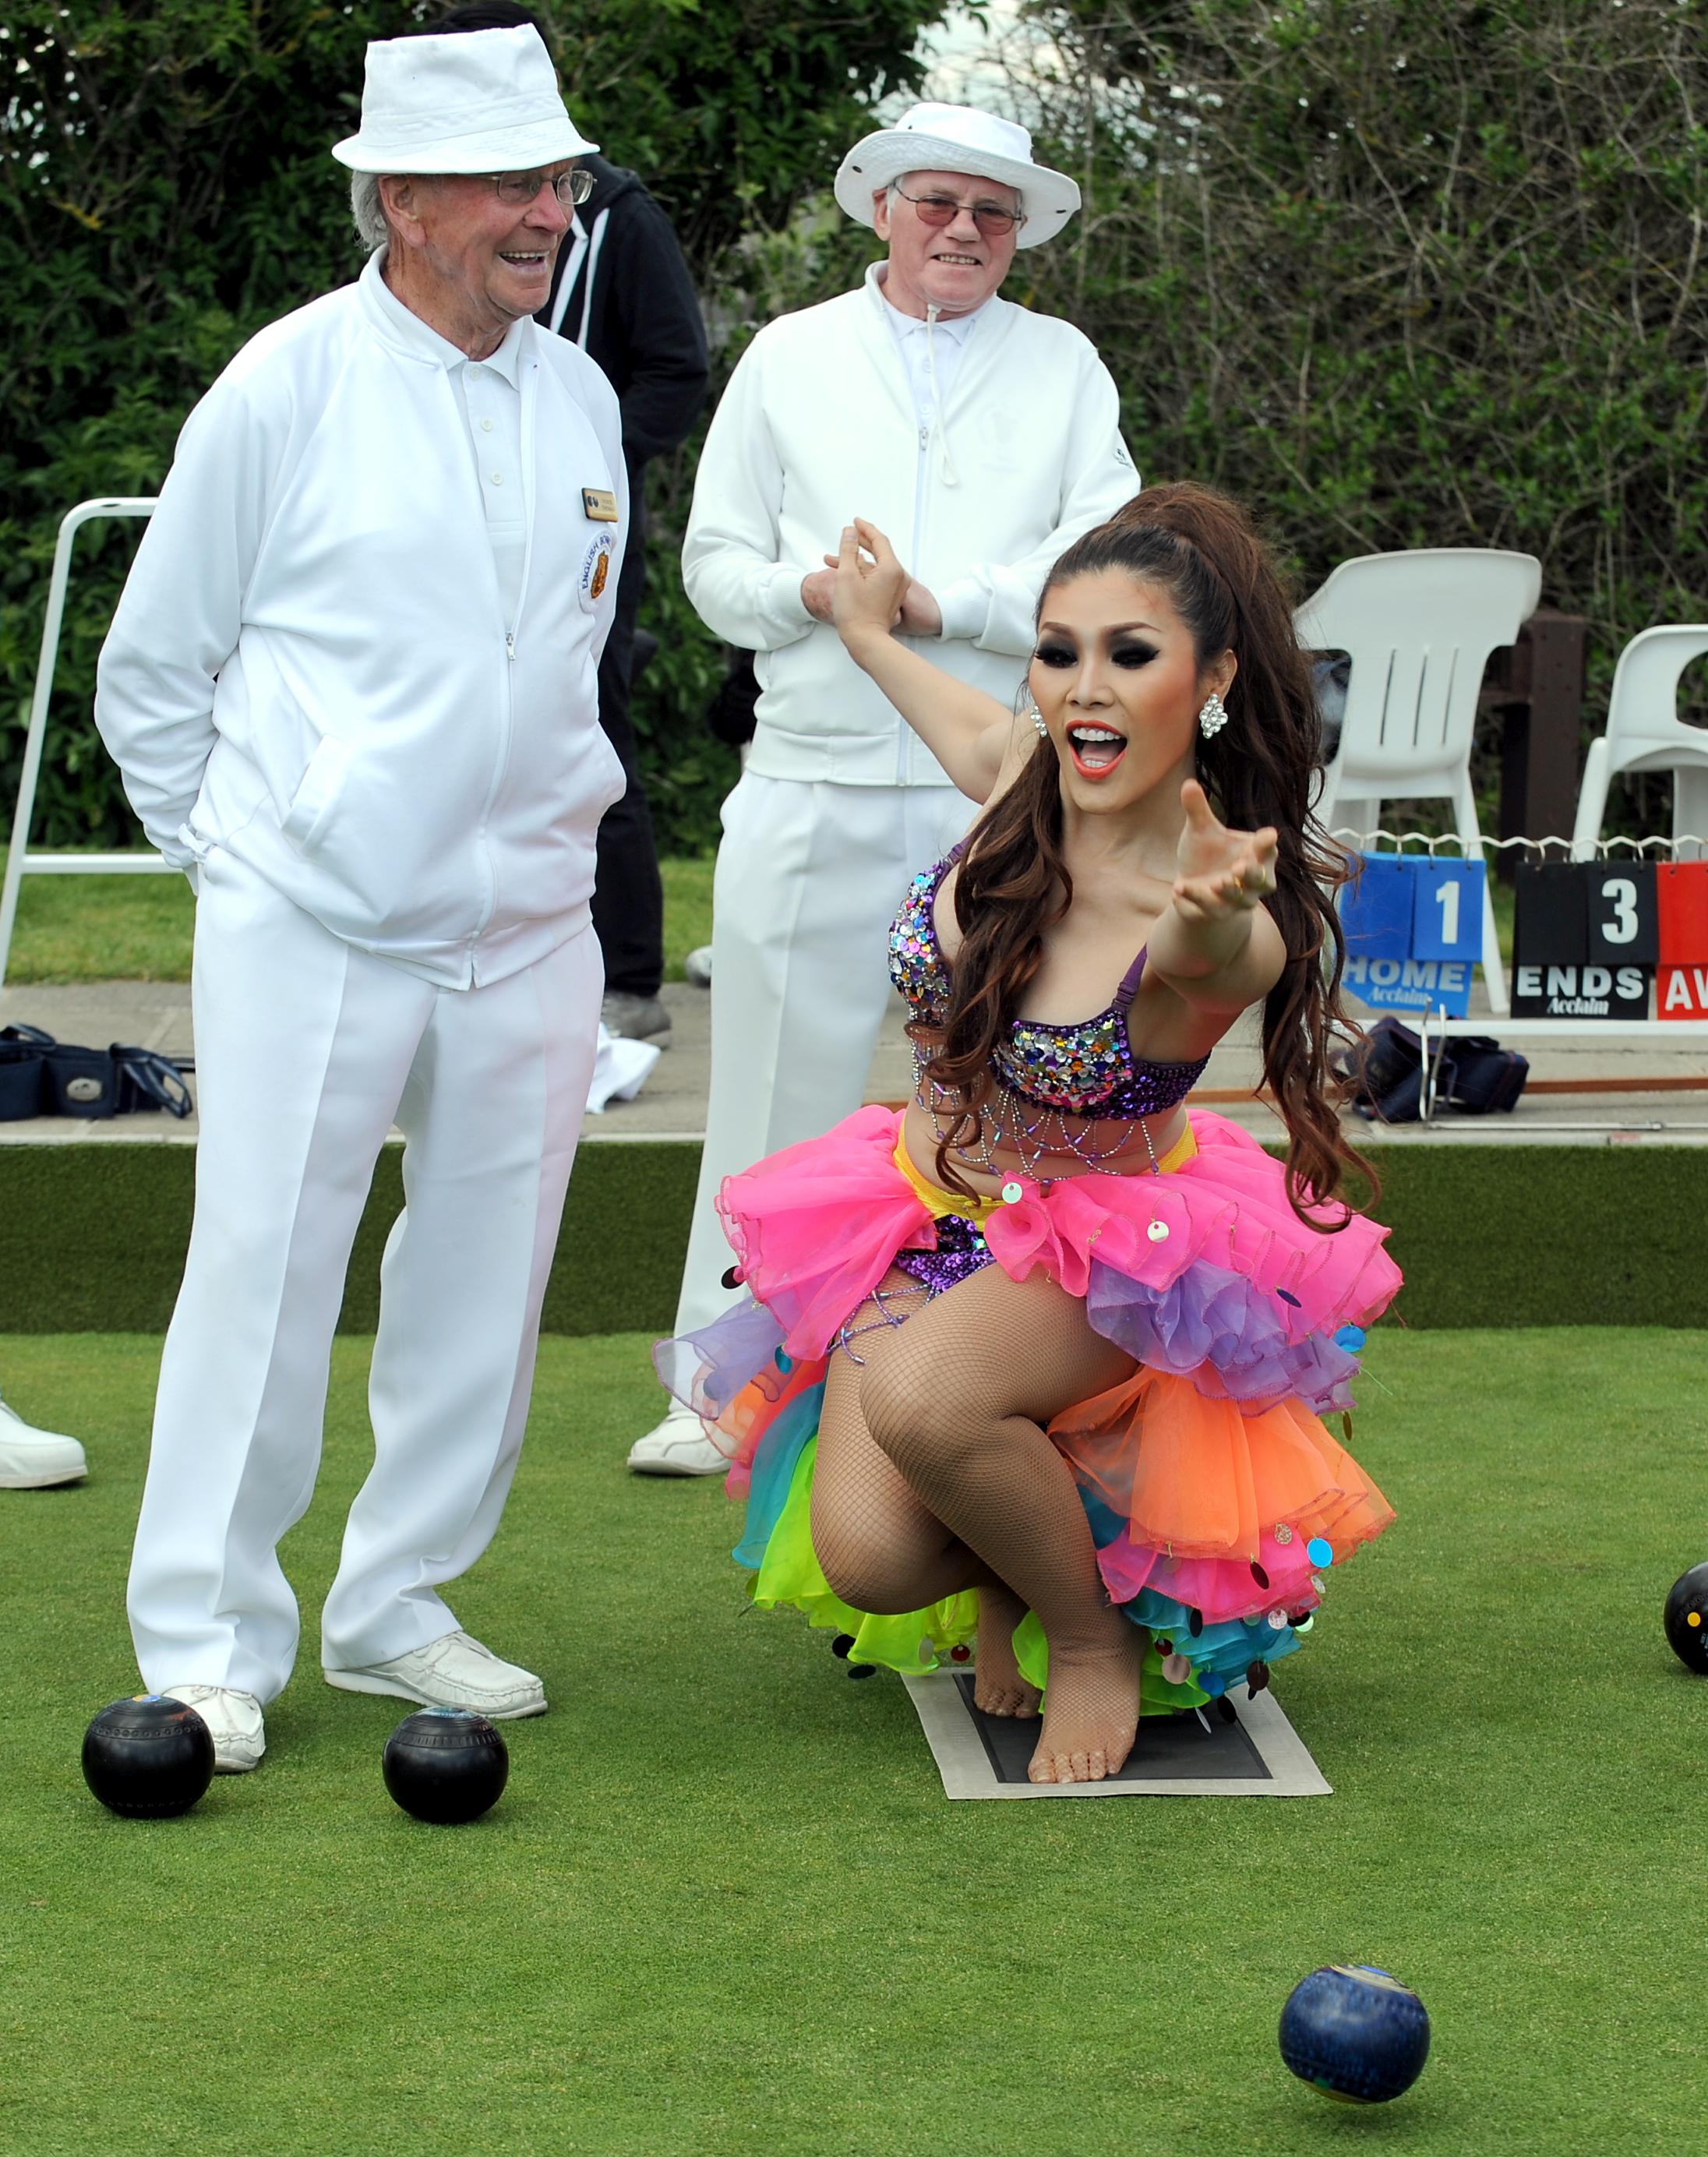 Lady Boys play bowls in teetering stilettos